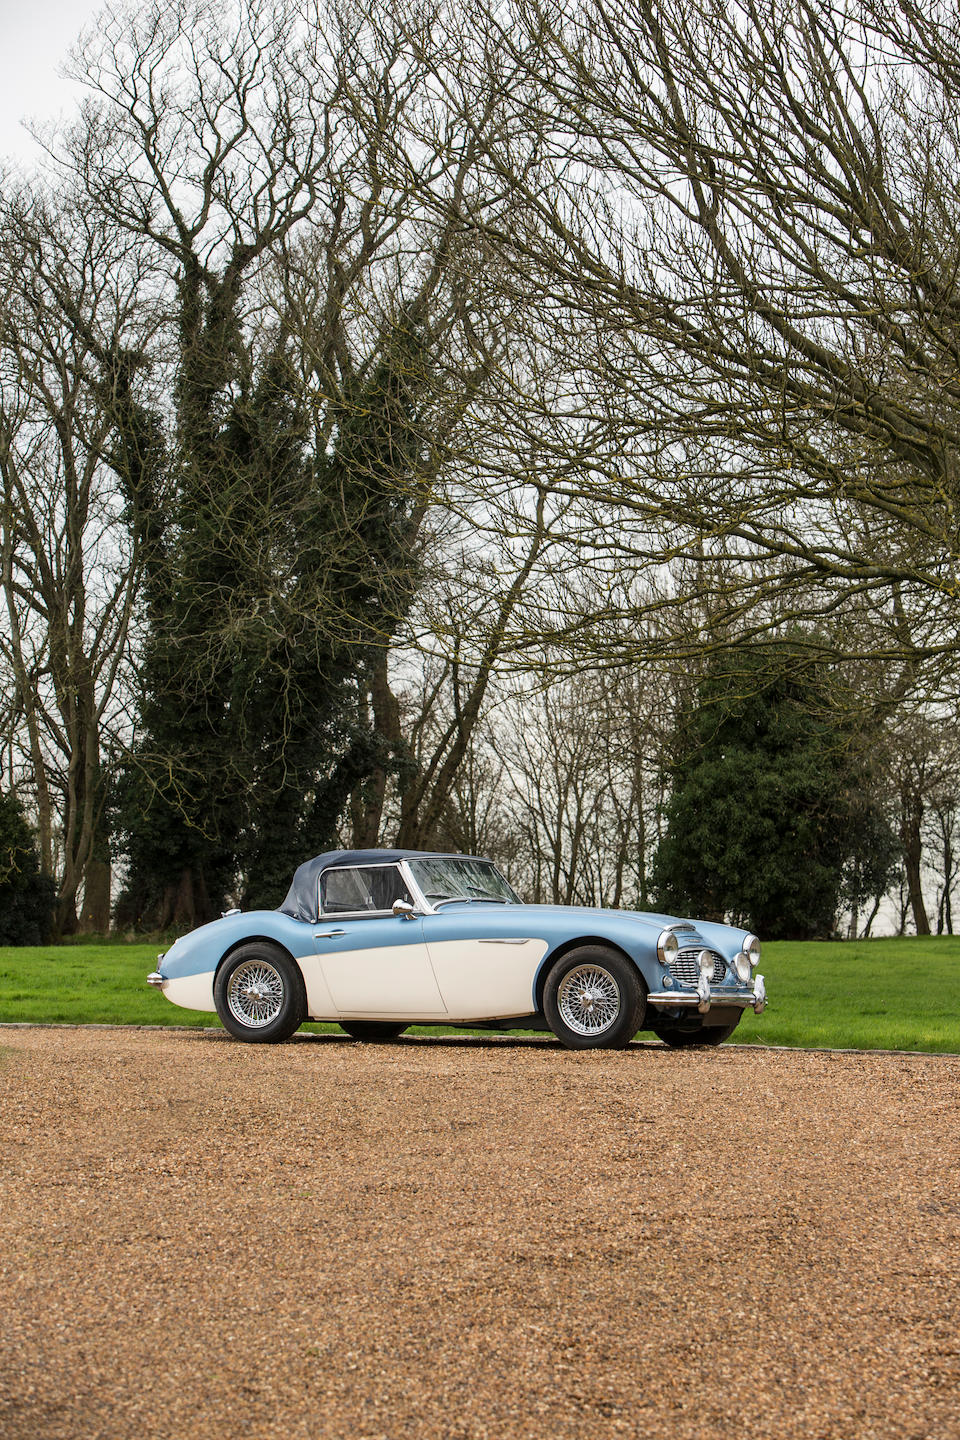 1958 Austin-Healey 100/6 BN6 Roadster  Chassis no. BN6L/3718 Engine no. 26D-RU-H/3718